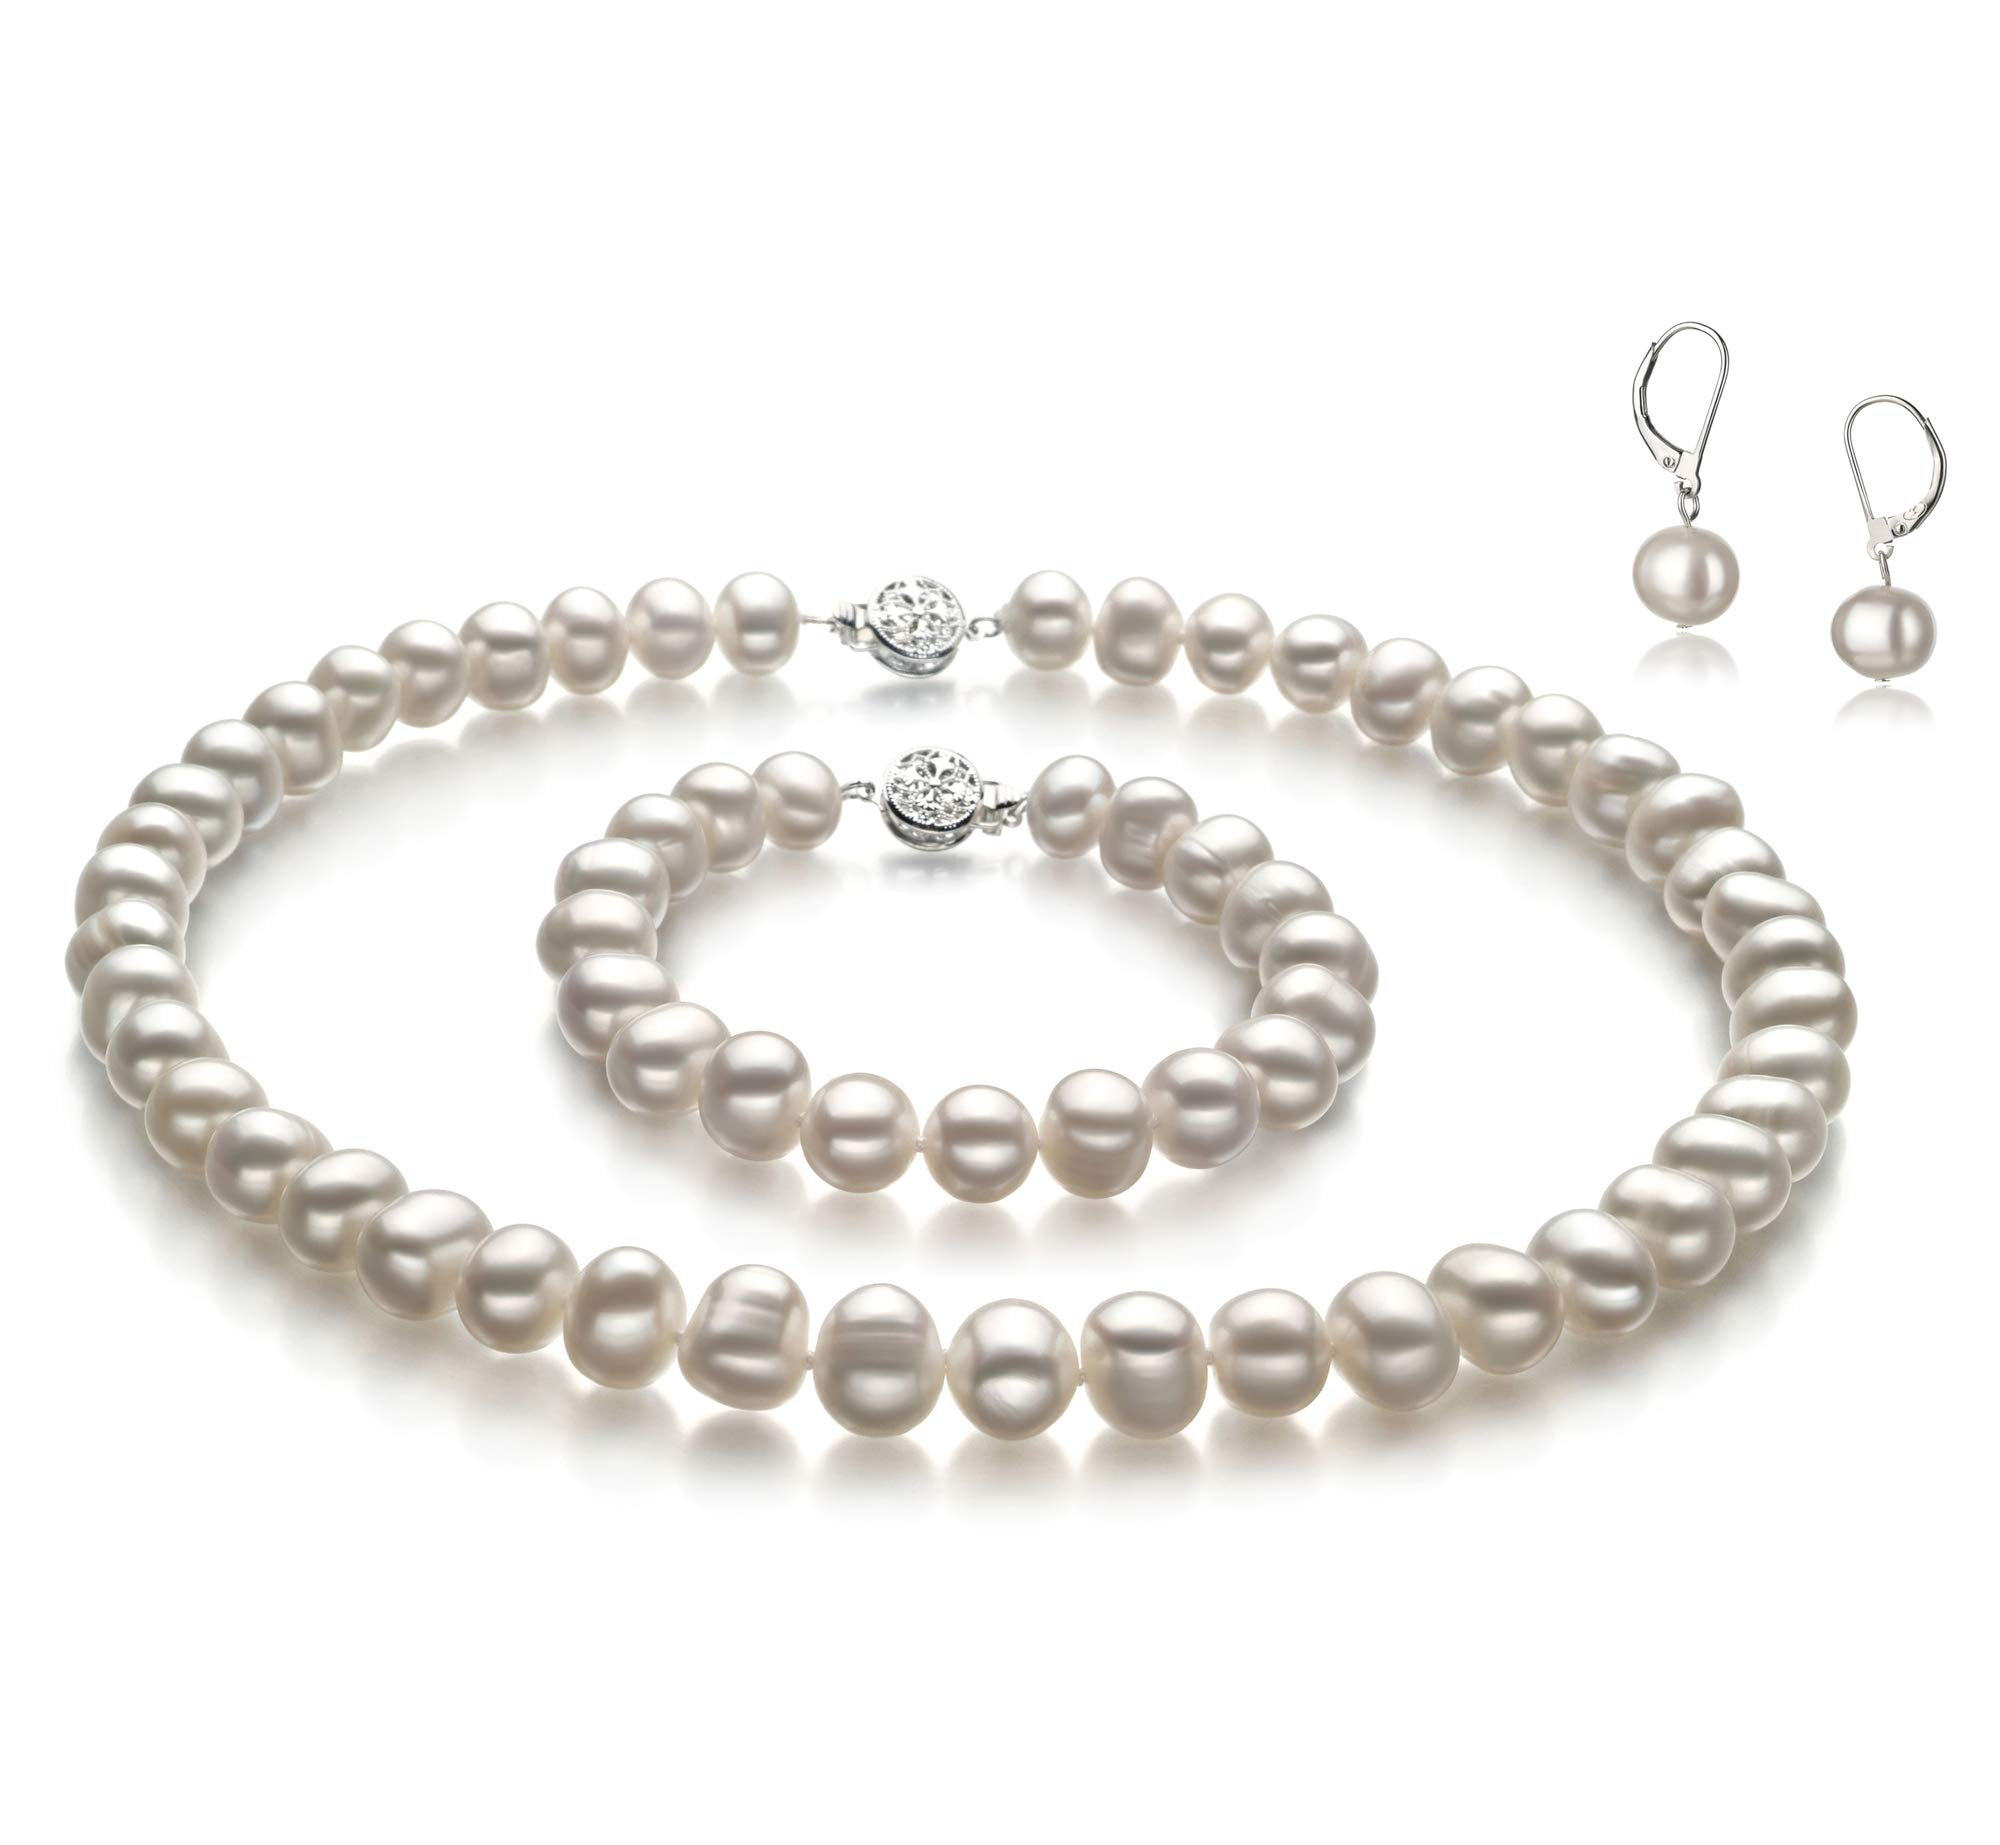 Kaitlyn White 8-9mm A Quality Freshwater Cultured Pearl Set for Women-16 in Chocker Length